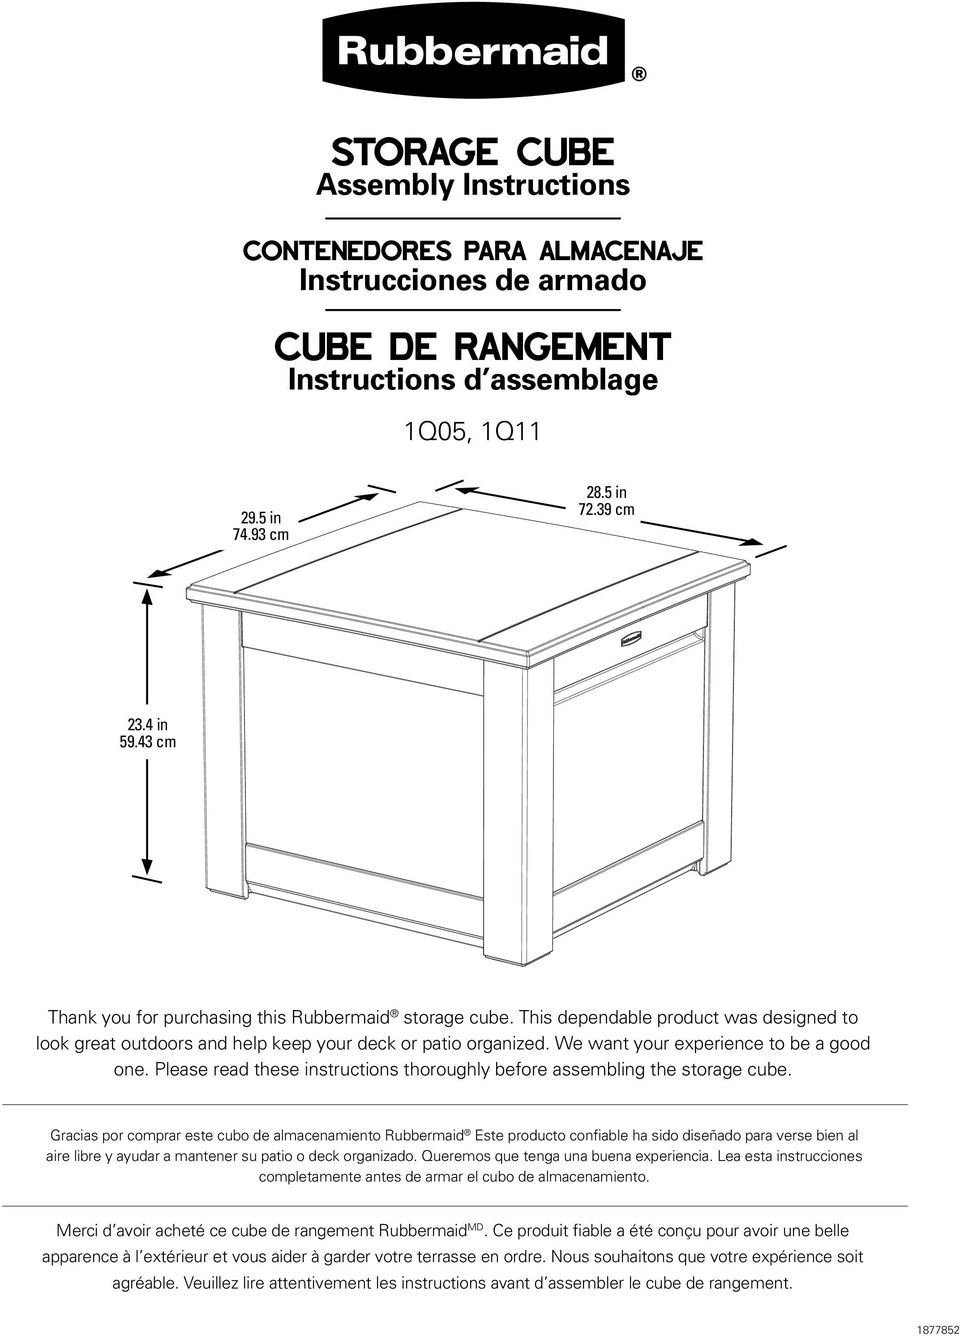 We want your experience to be a good one. Please read these instructions thoroughly before assembling the storage cube.